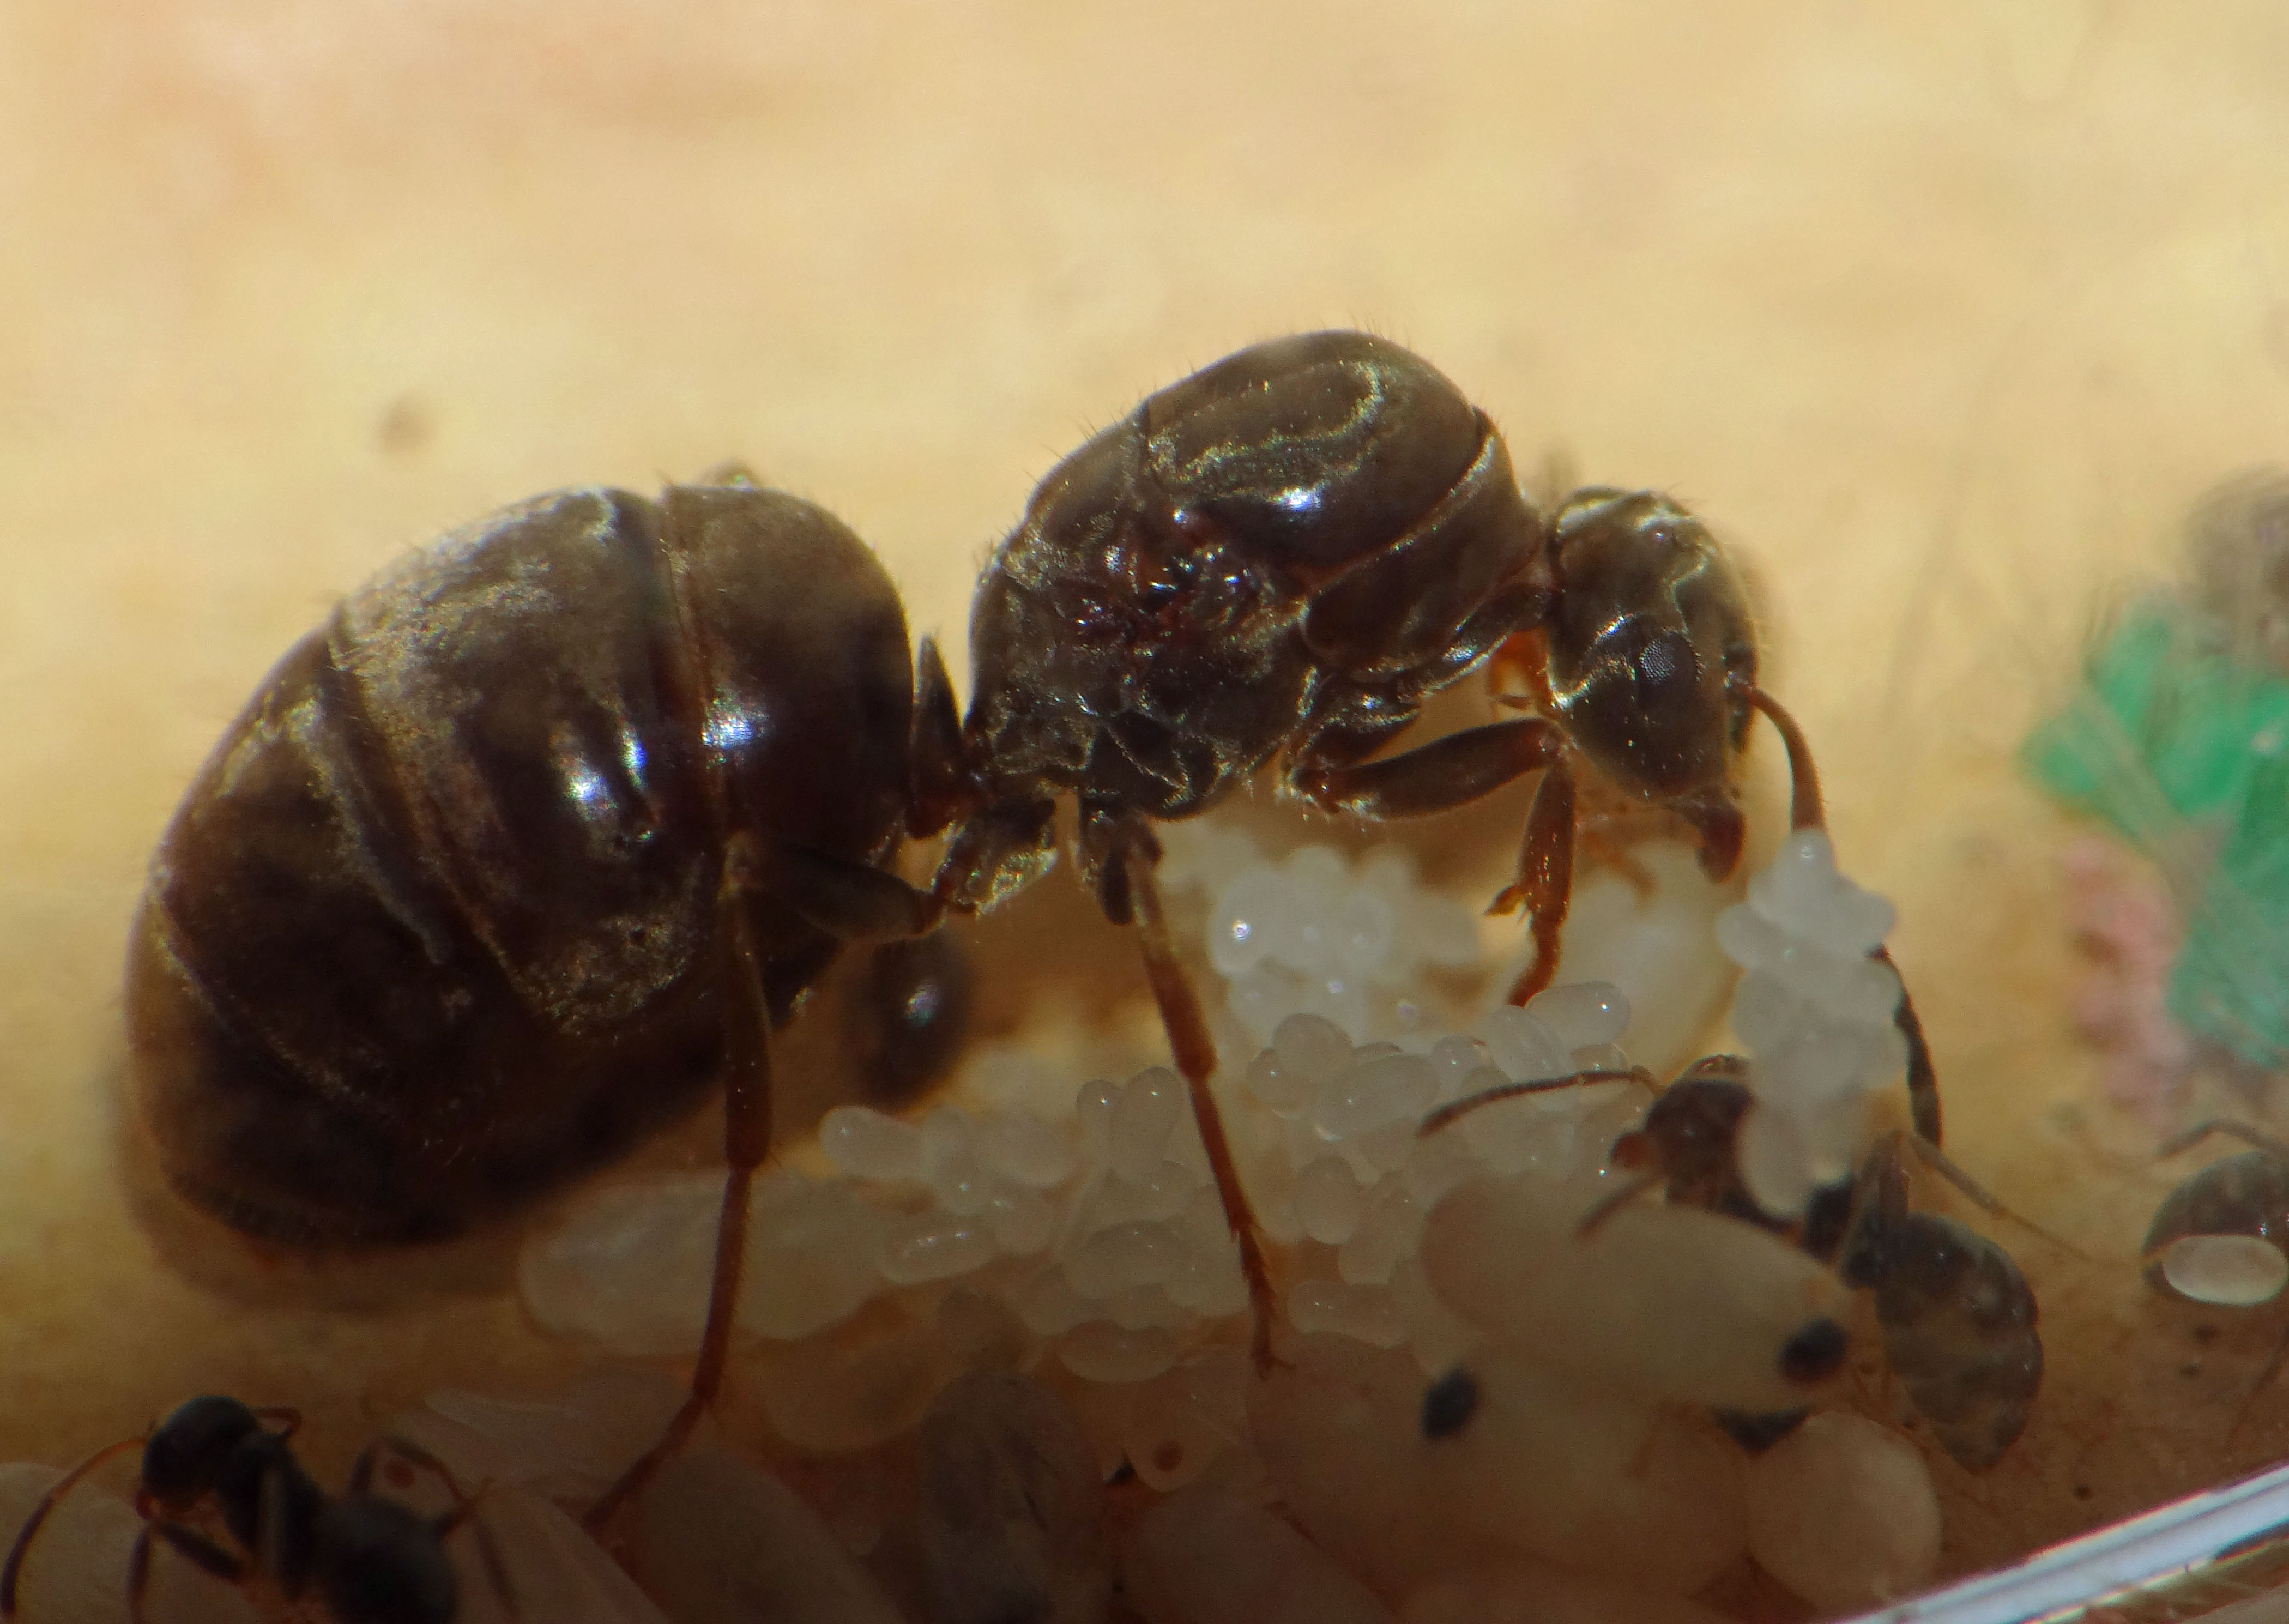 FileQueen Lasius Niger With Eggs And Cocoons